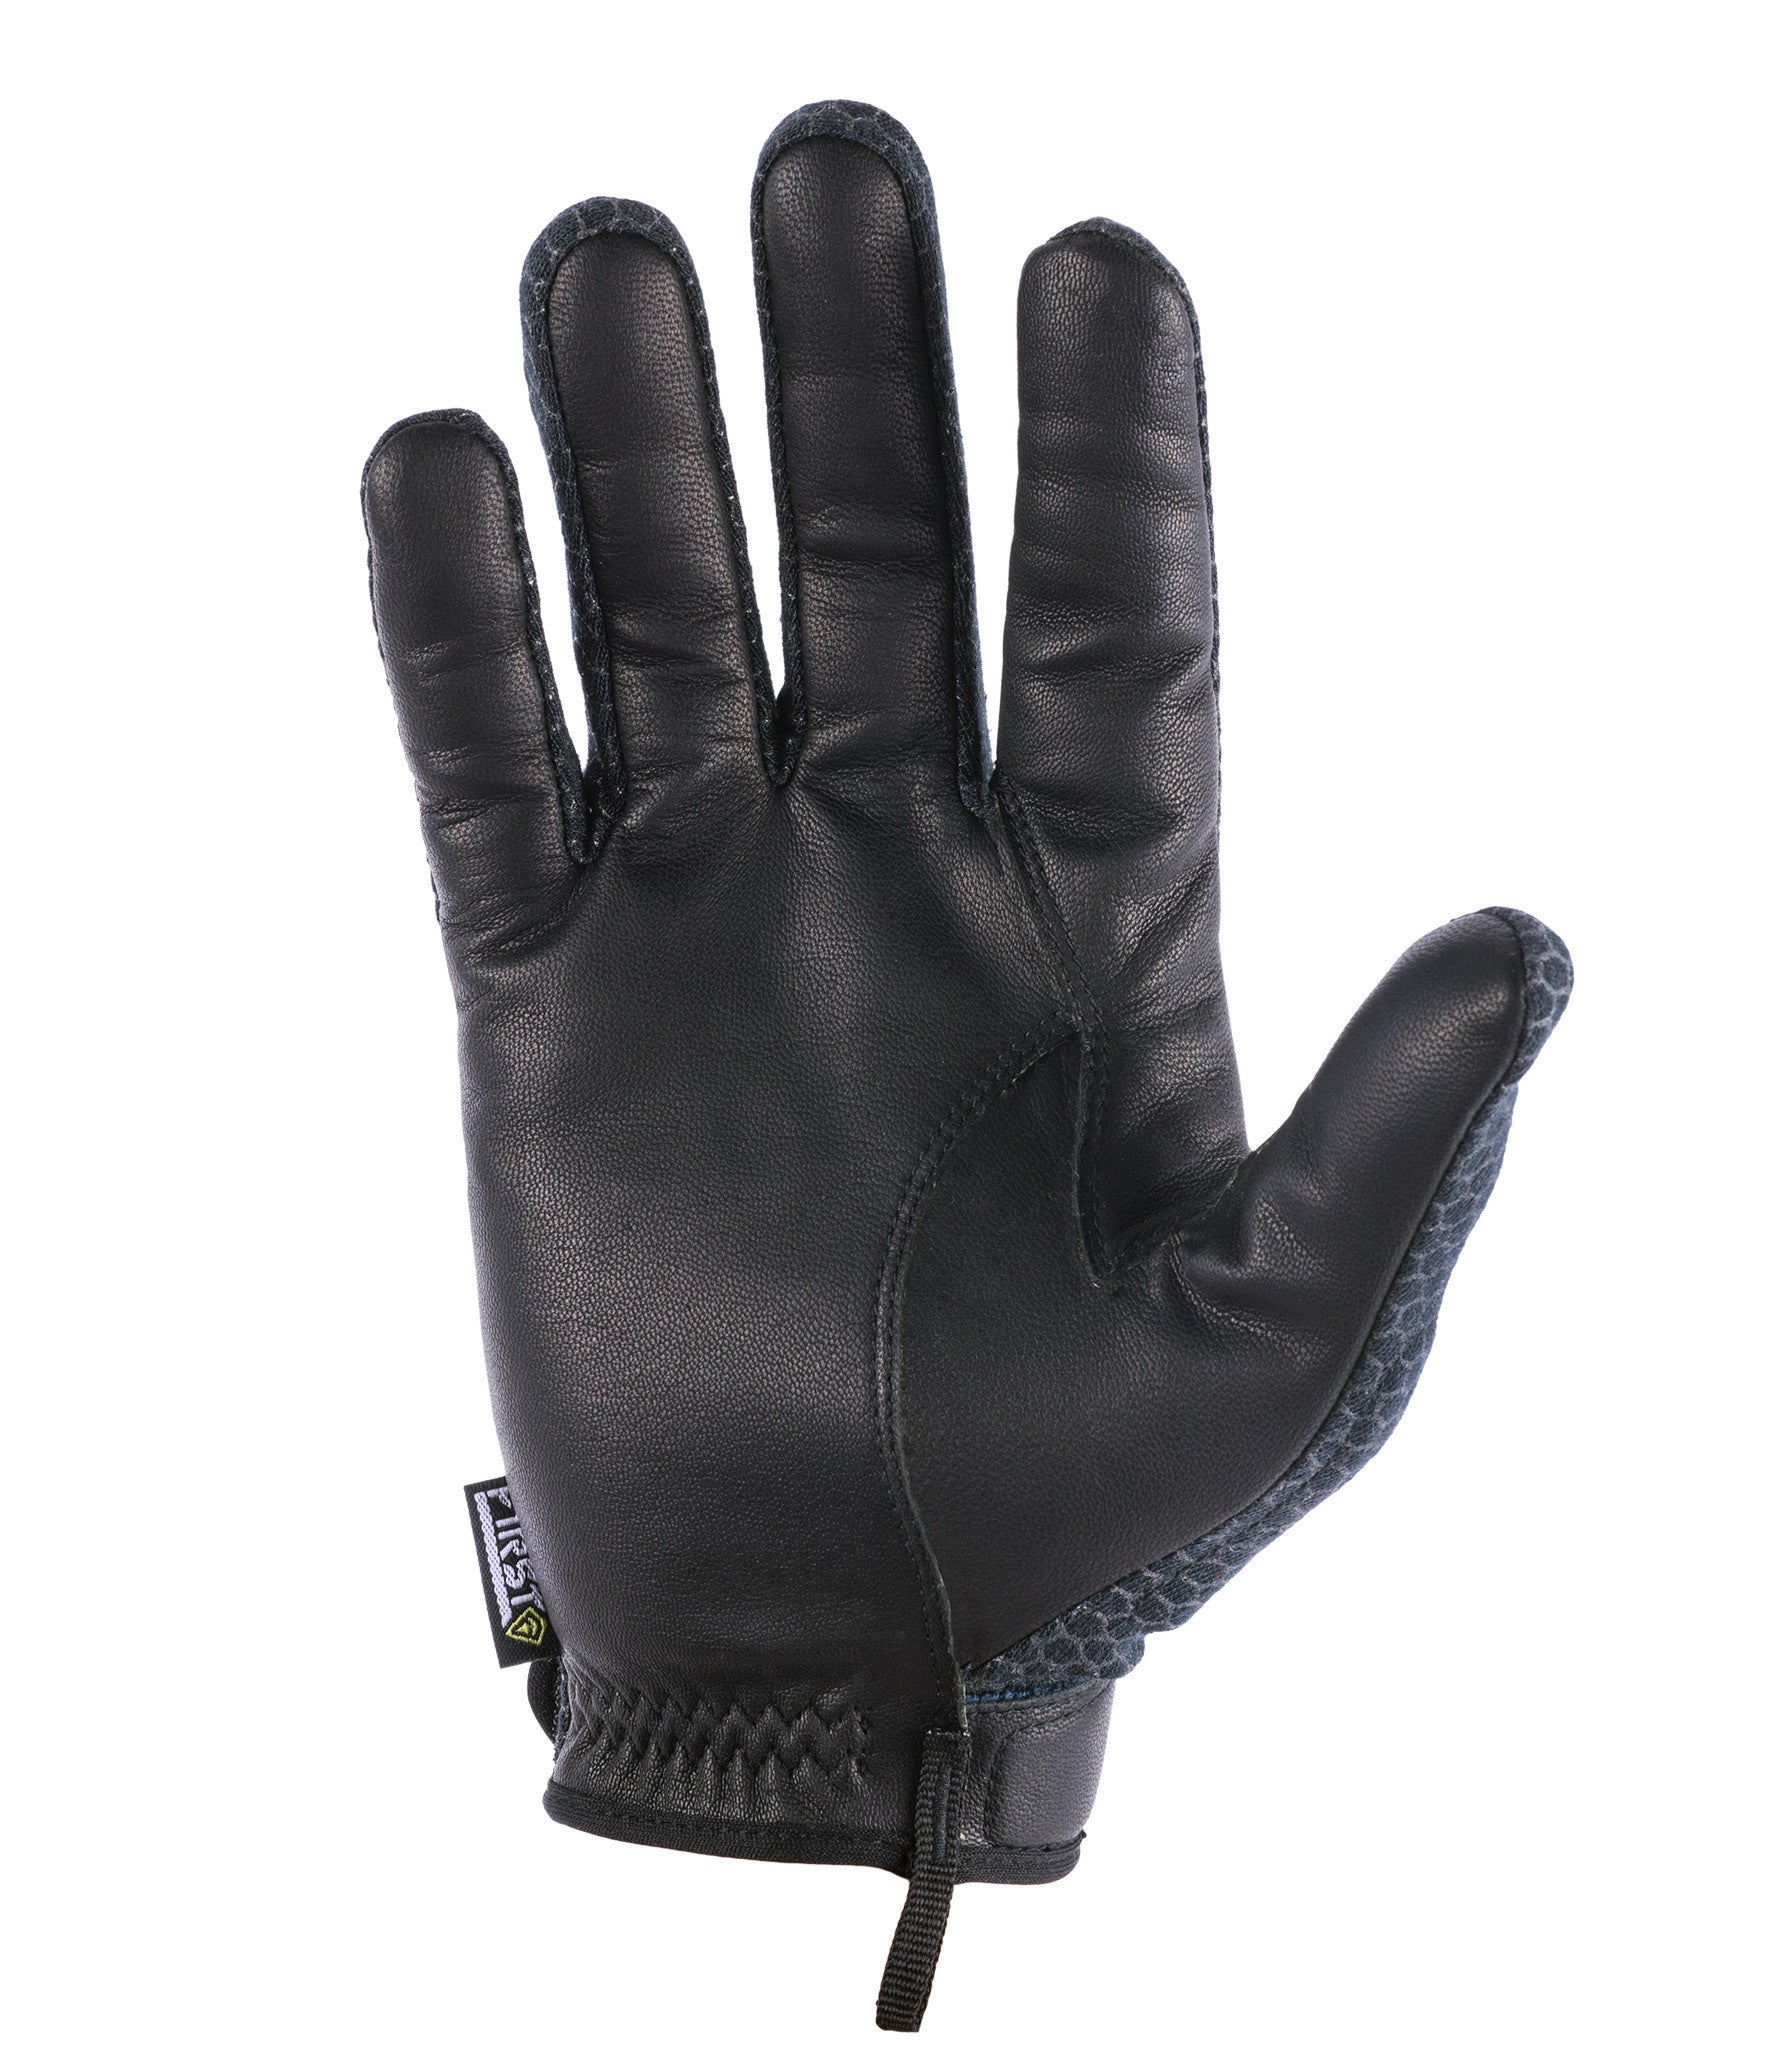 Handschuhe Army Security SWAT            -NEU Army Gloves coyote